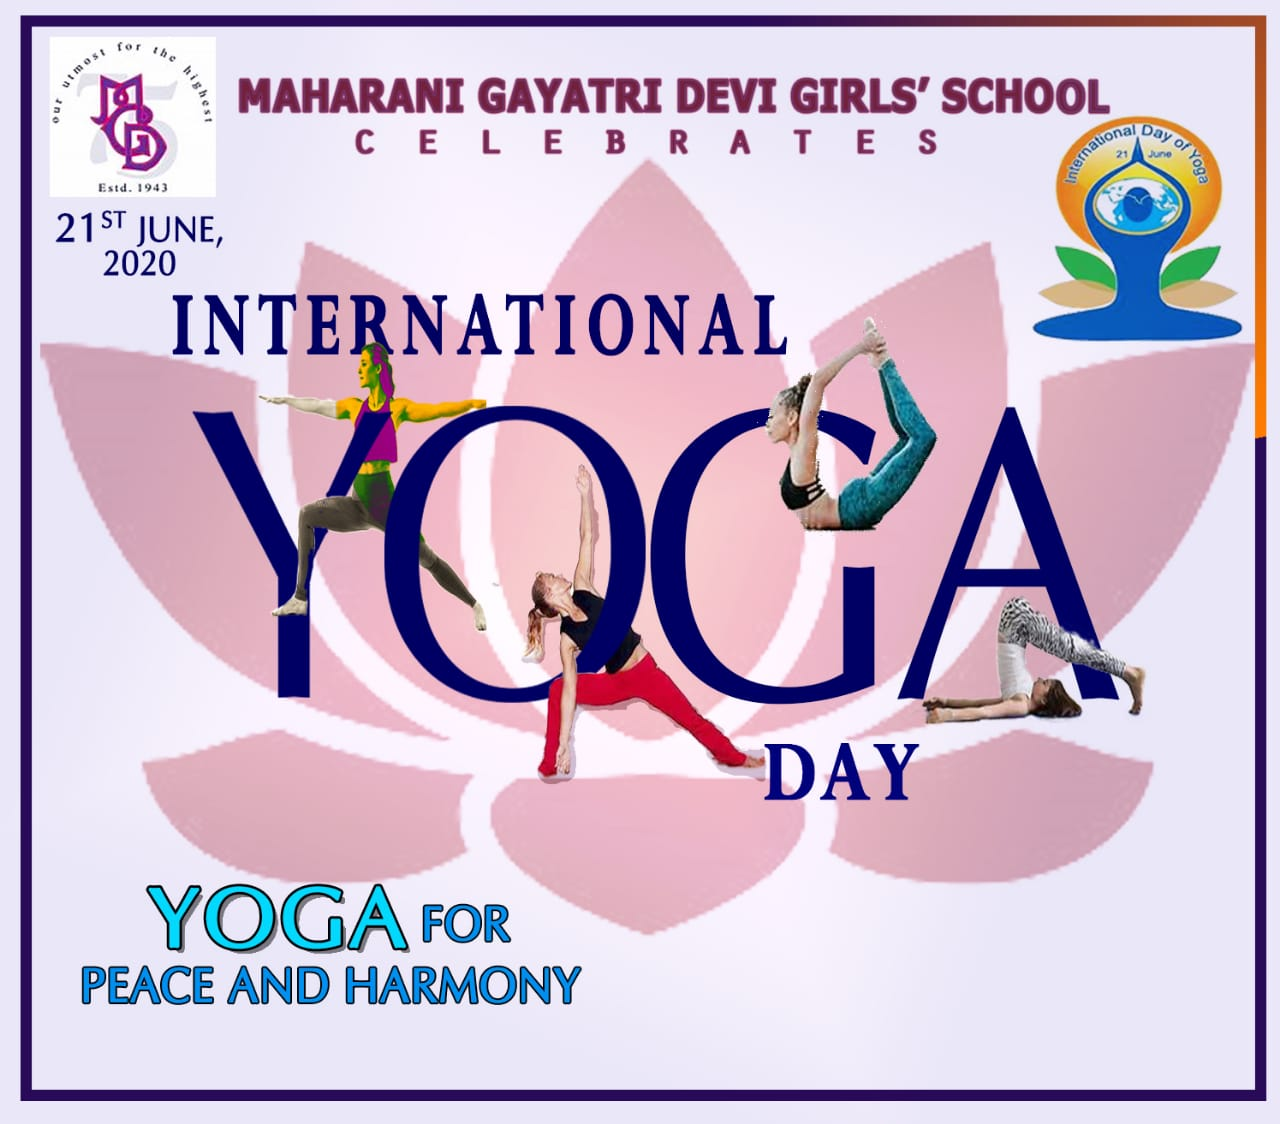 International Yoga Day @ MGD